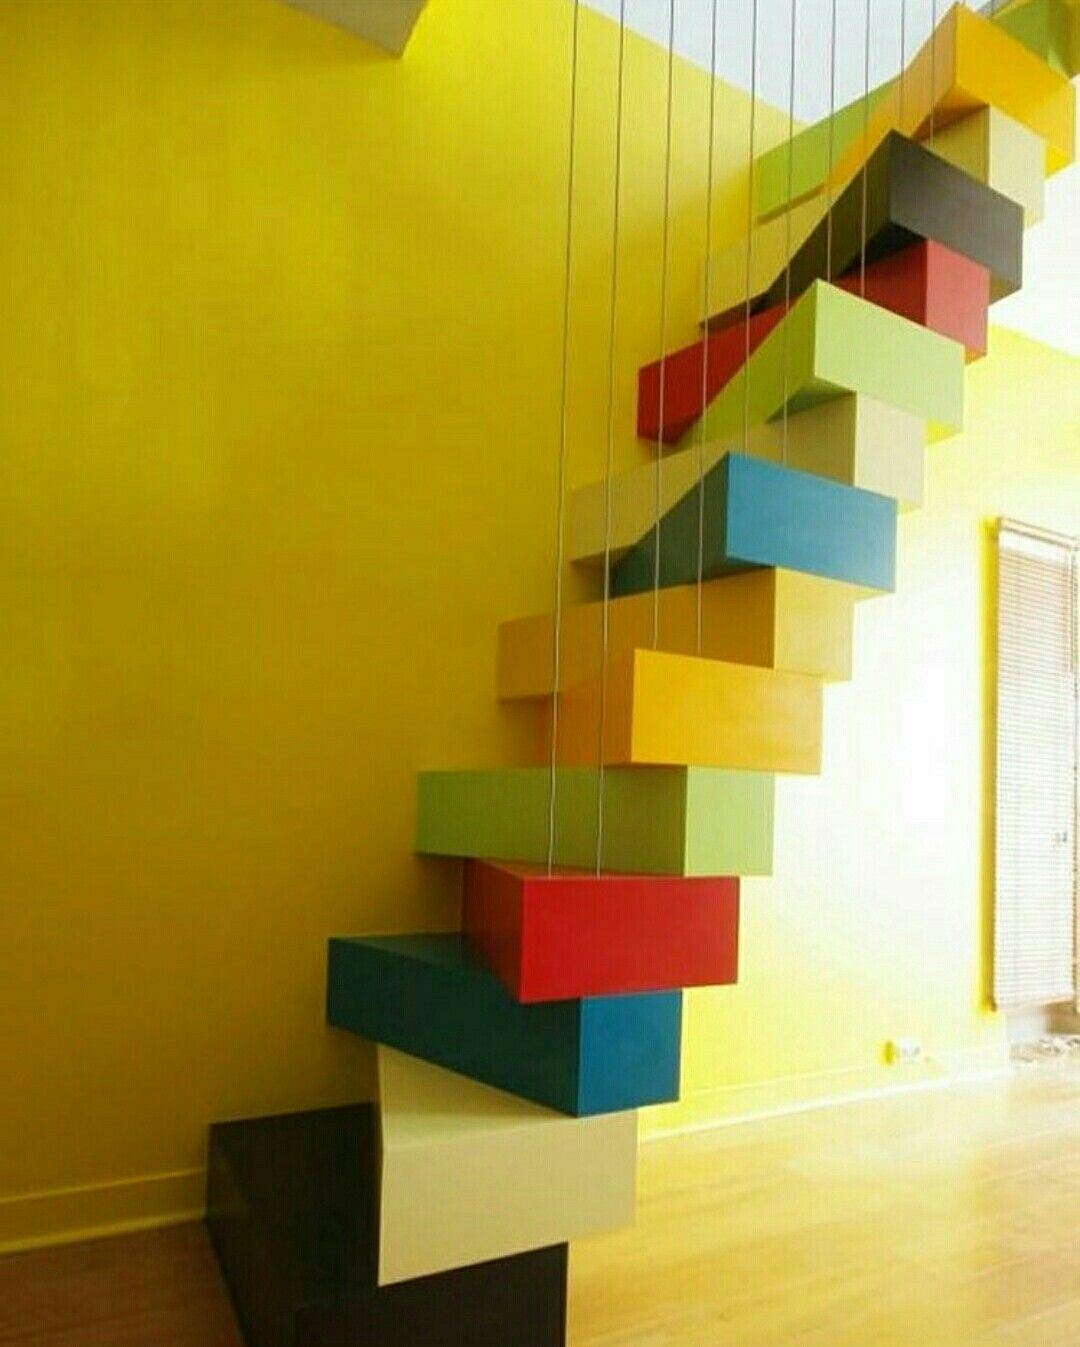 Pin by lois blandford on stairs and lofts   Pinterest   Staircases ...